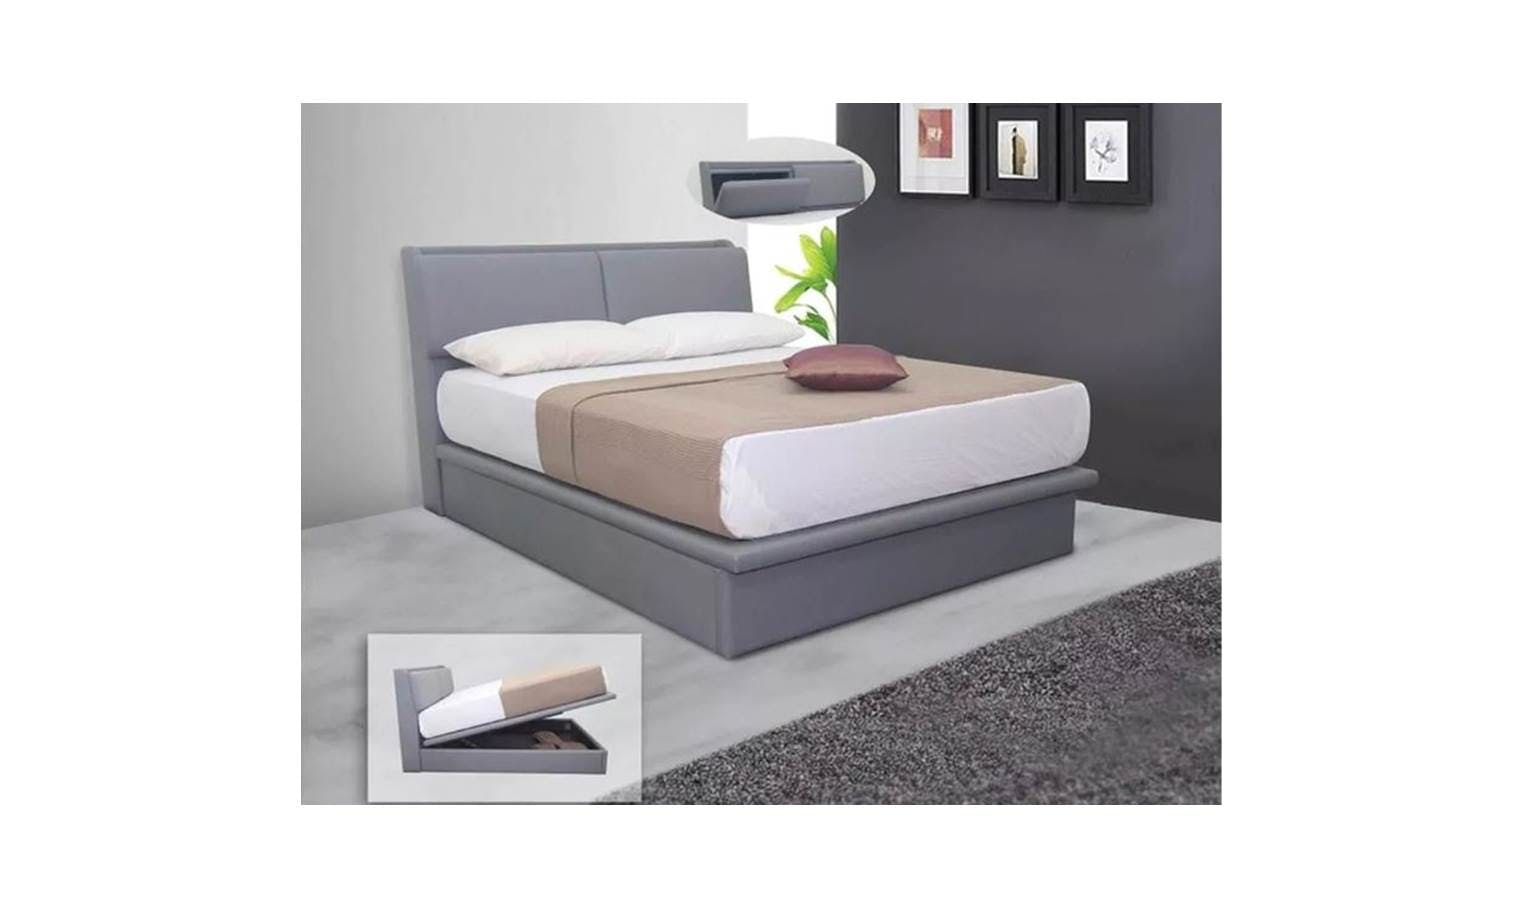 Cobar Storage Bedframe Queen Size Harvey Norman Singapore